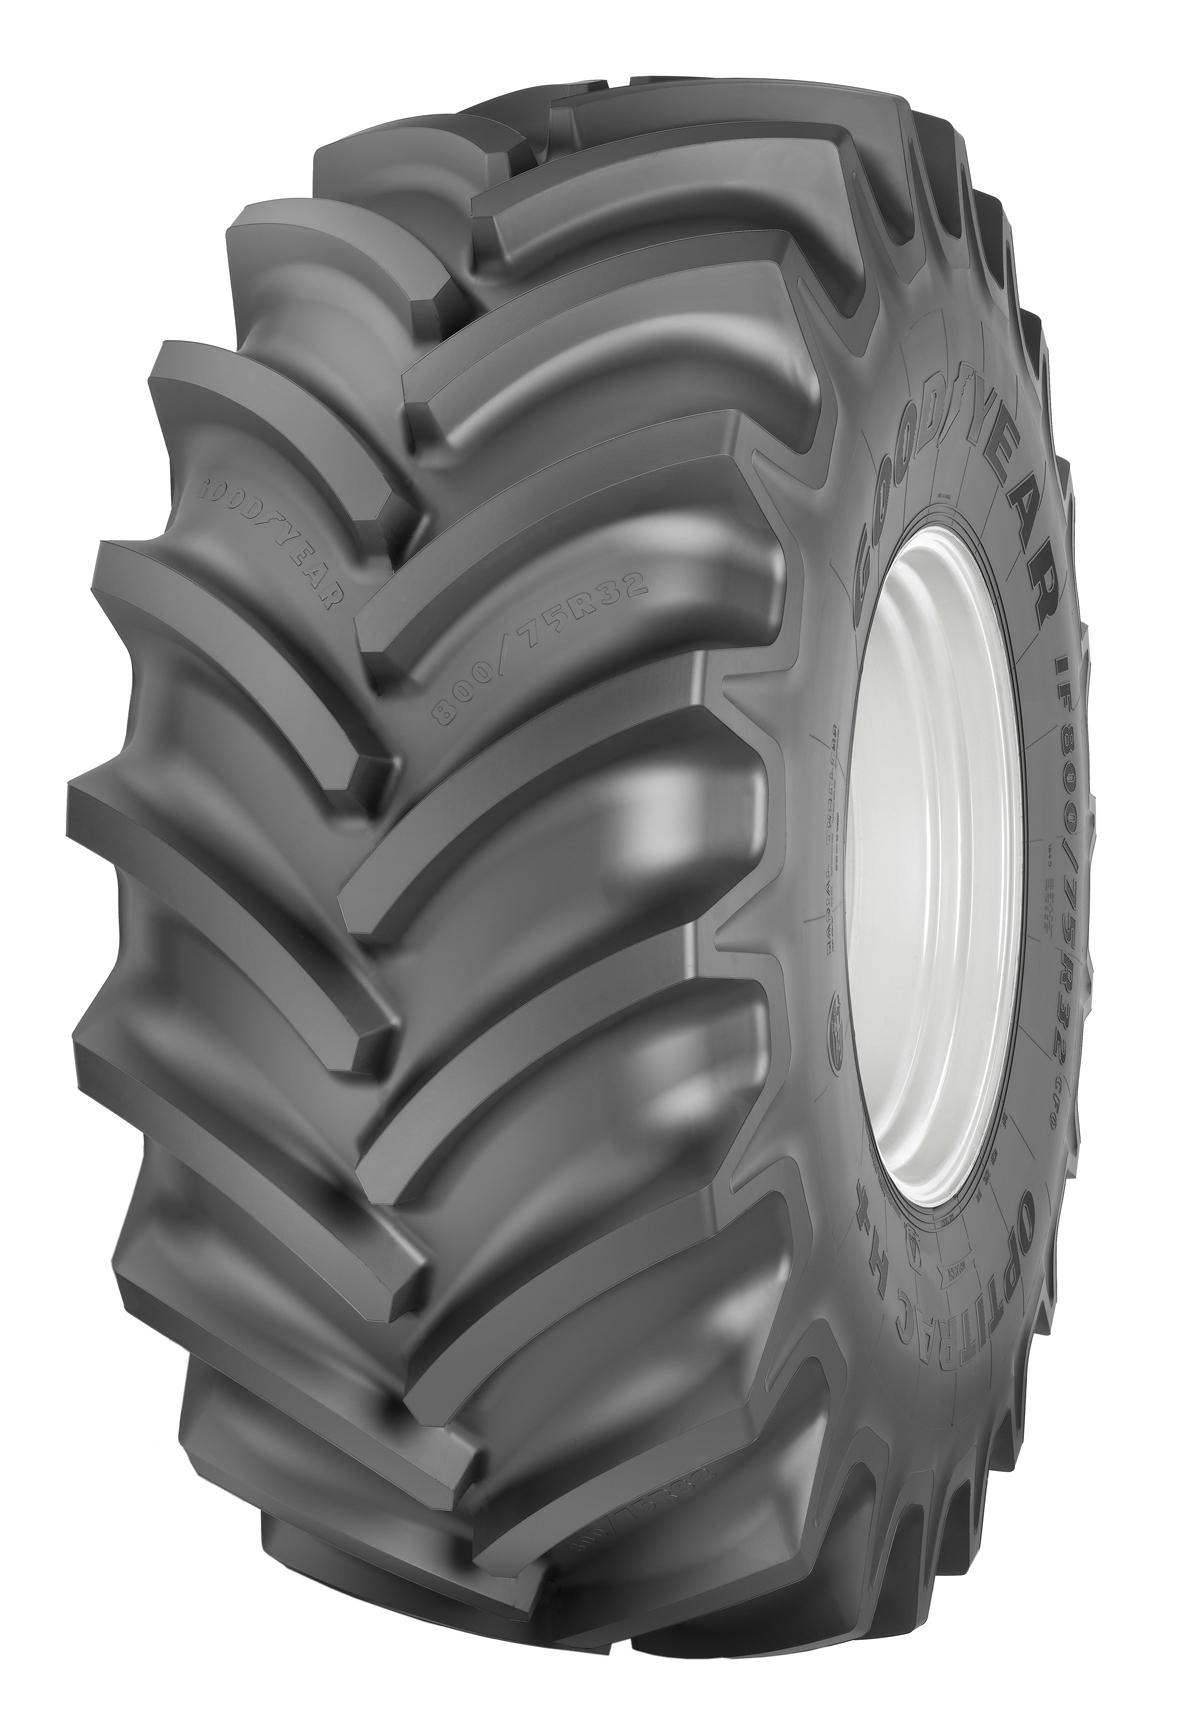 Anvelope Radiale GOODYEAR OPTITRAC R+ 600/70 R 30